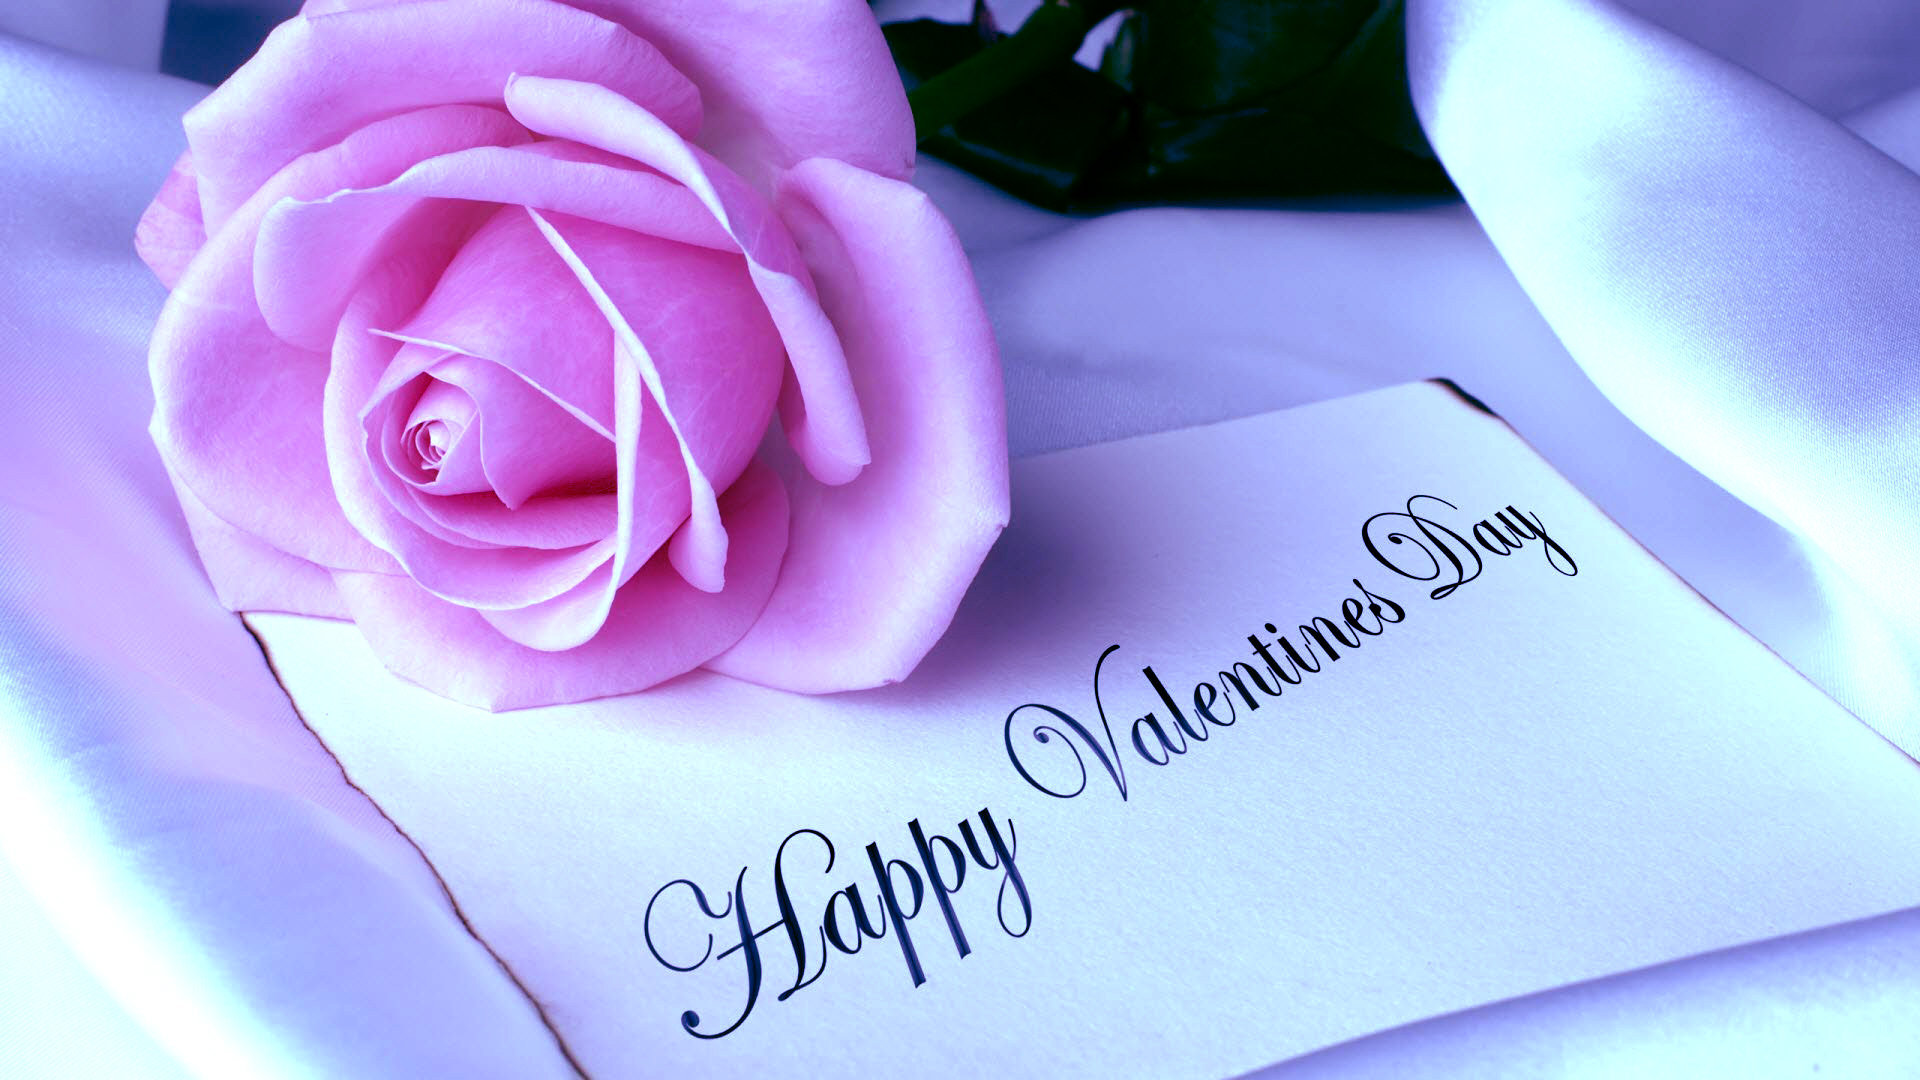 HD Wallpaper Valentines Day